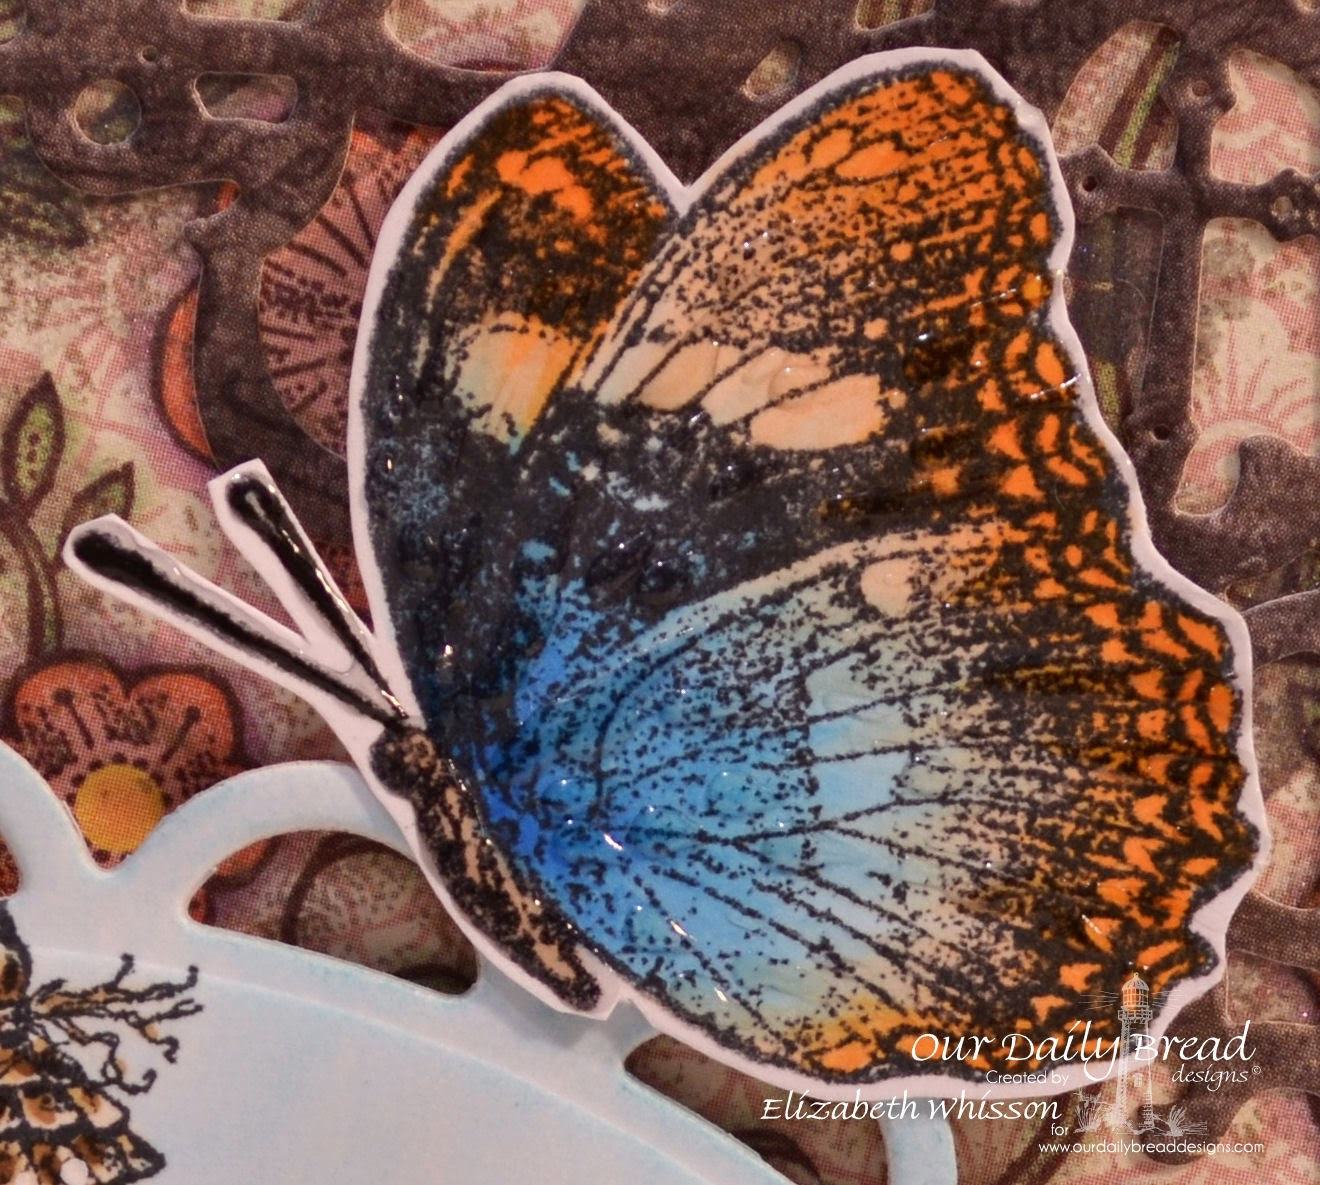 Elizabeth Whisson, Our Daily Bread Designs, ODBD, Missing You, butterfly, reverse stamping, mirror stamping, copic markers, copics